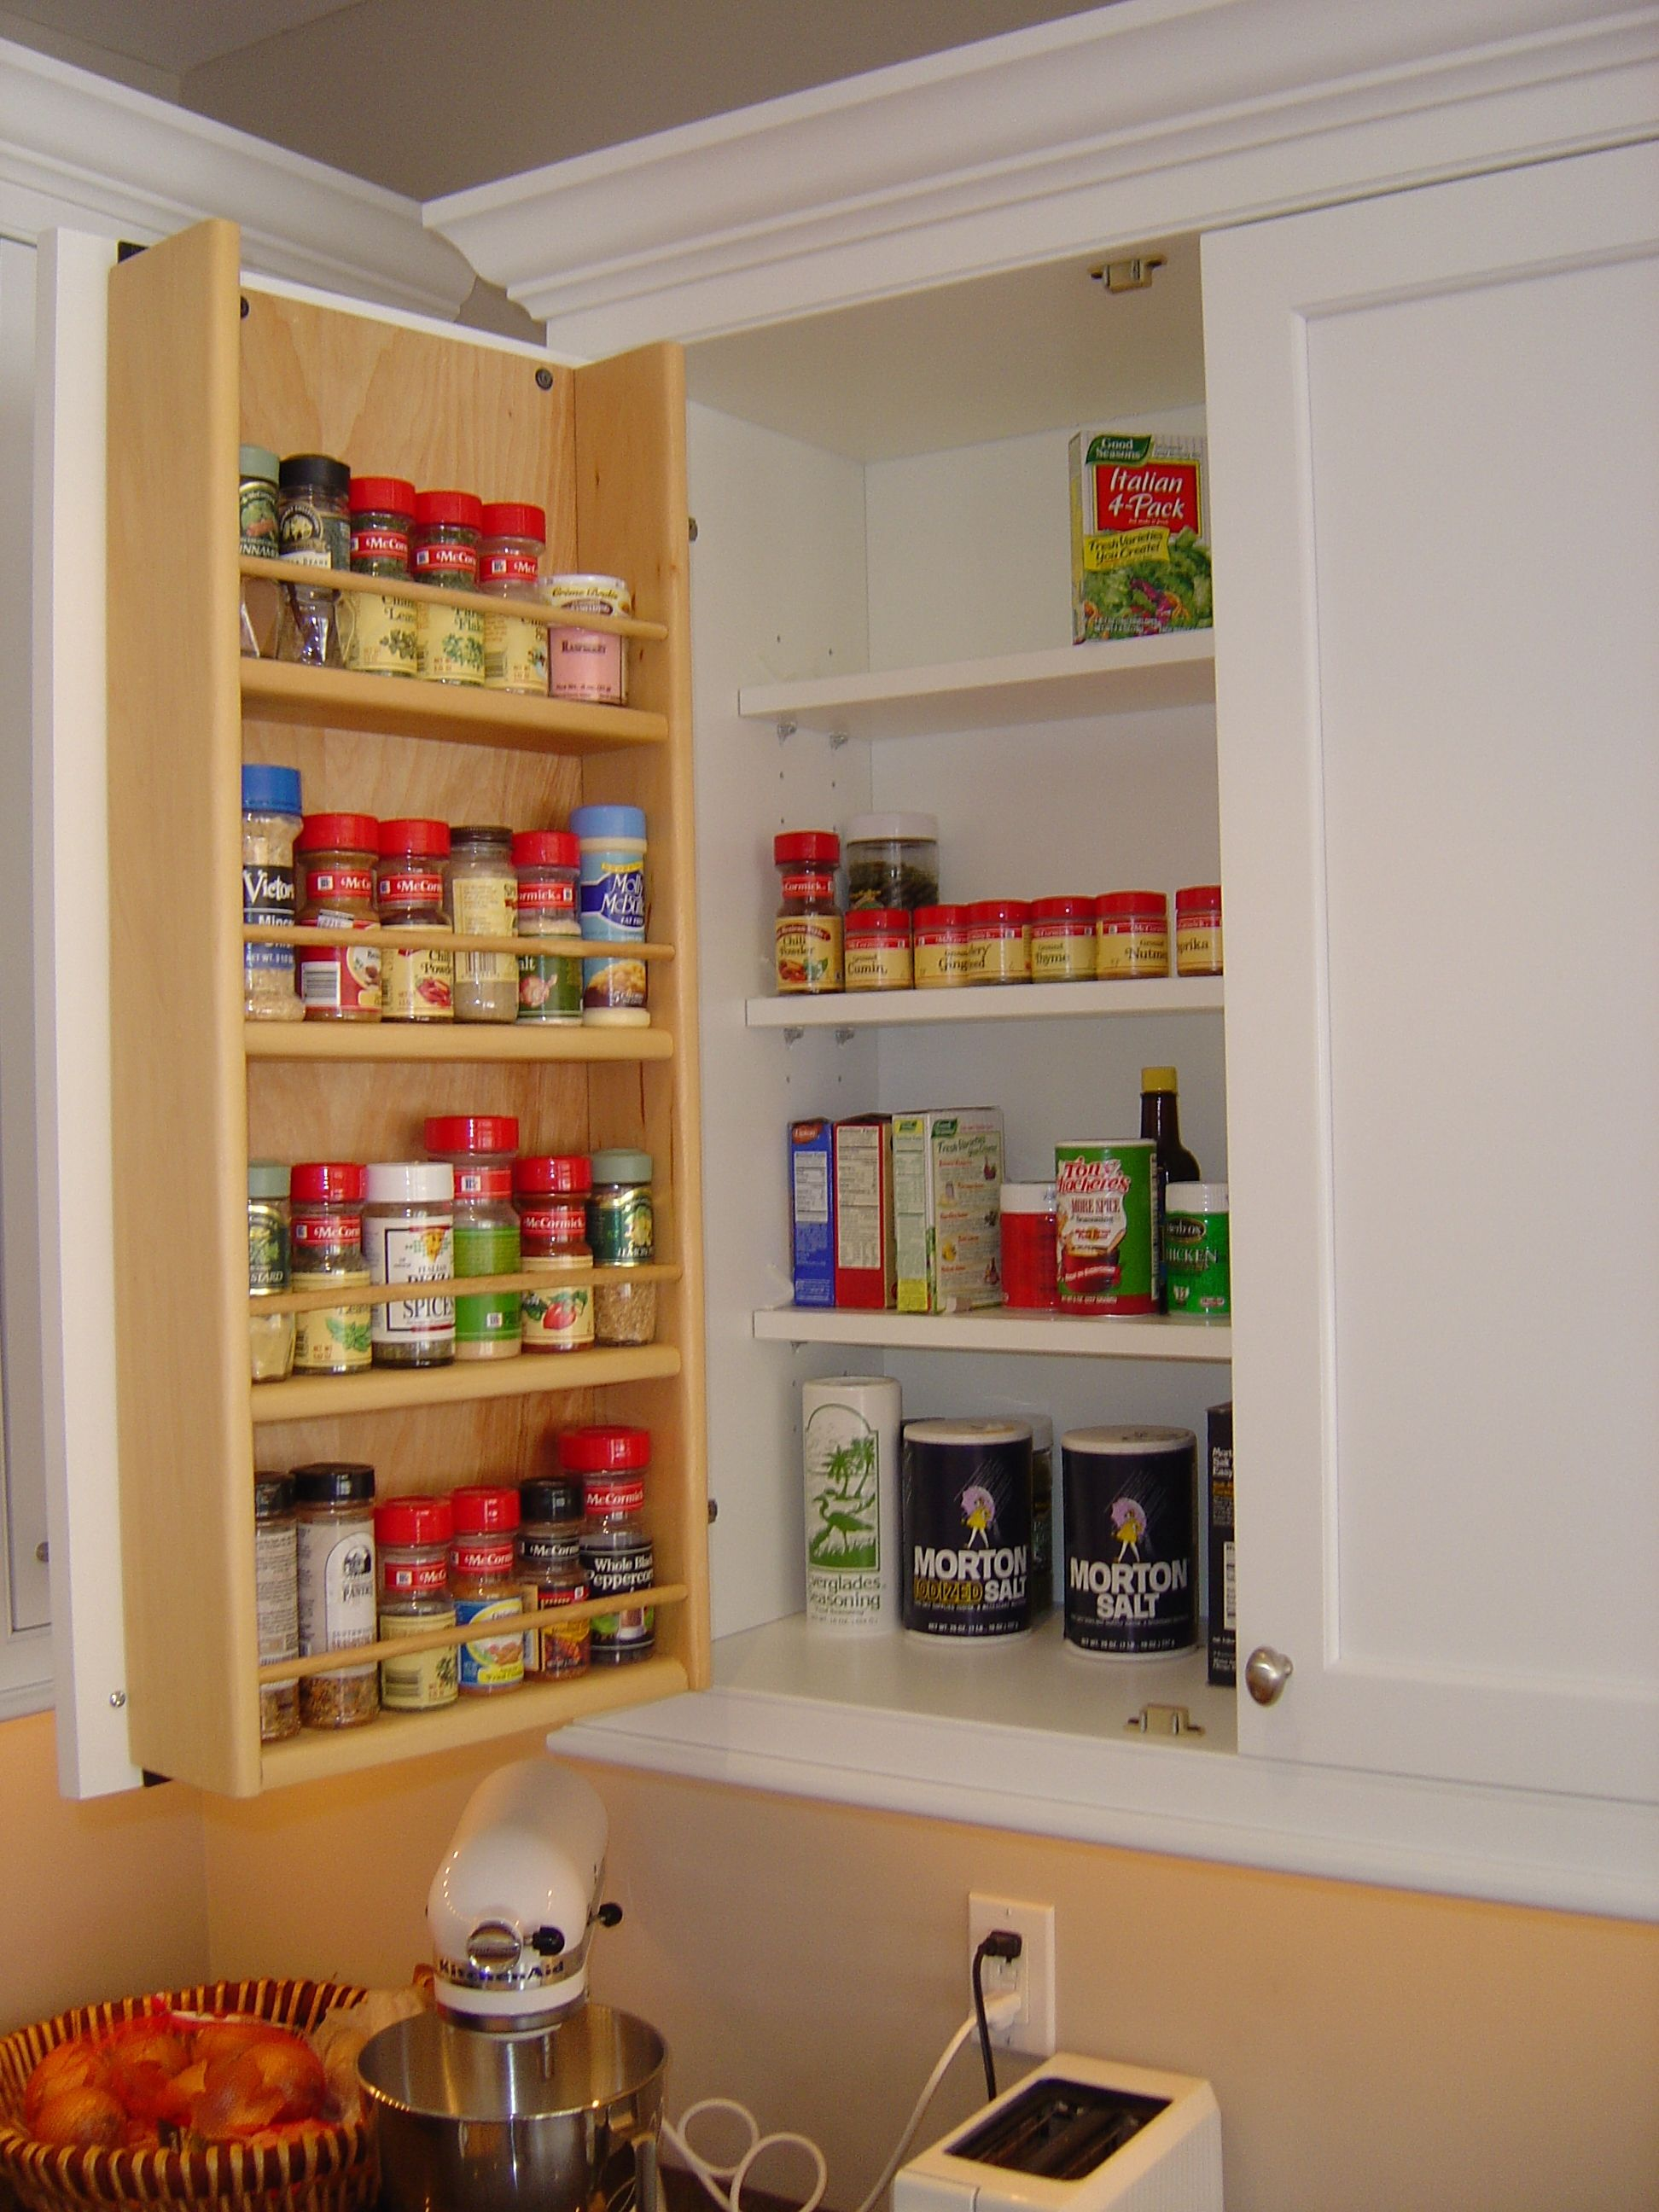 Storage For Kitchen Cupboards Tedd Wood Spice Storage On Inside Of Cabinet Door Storage